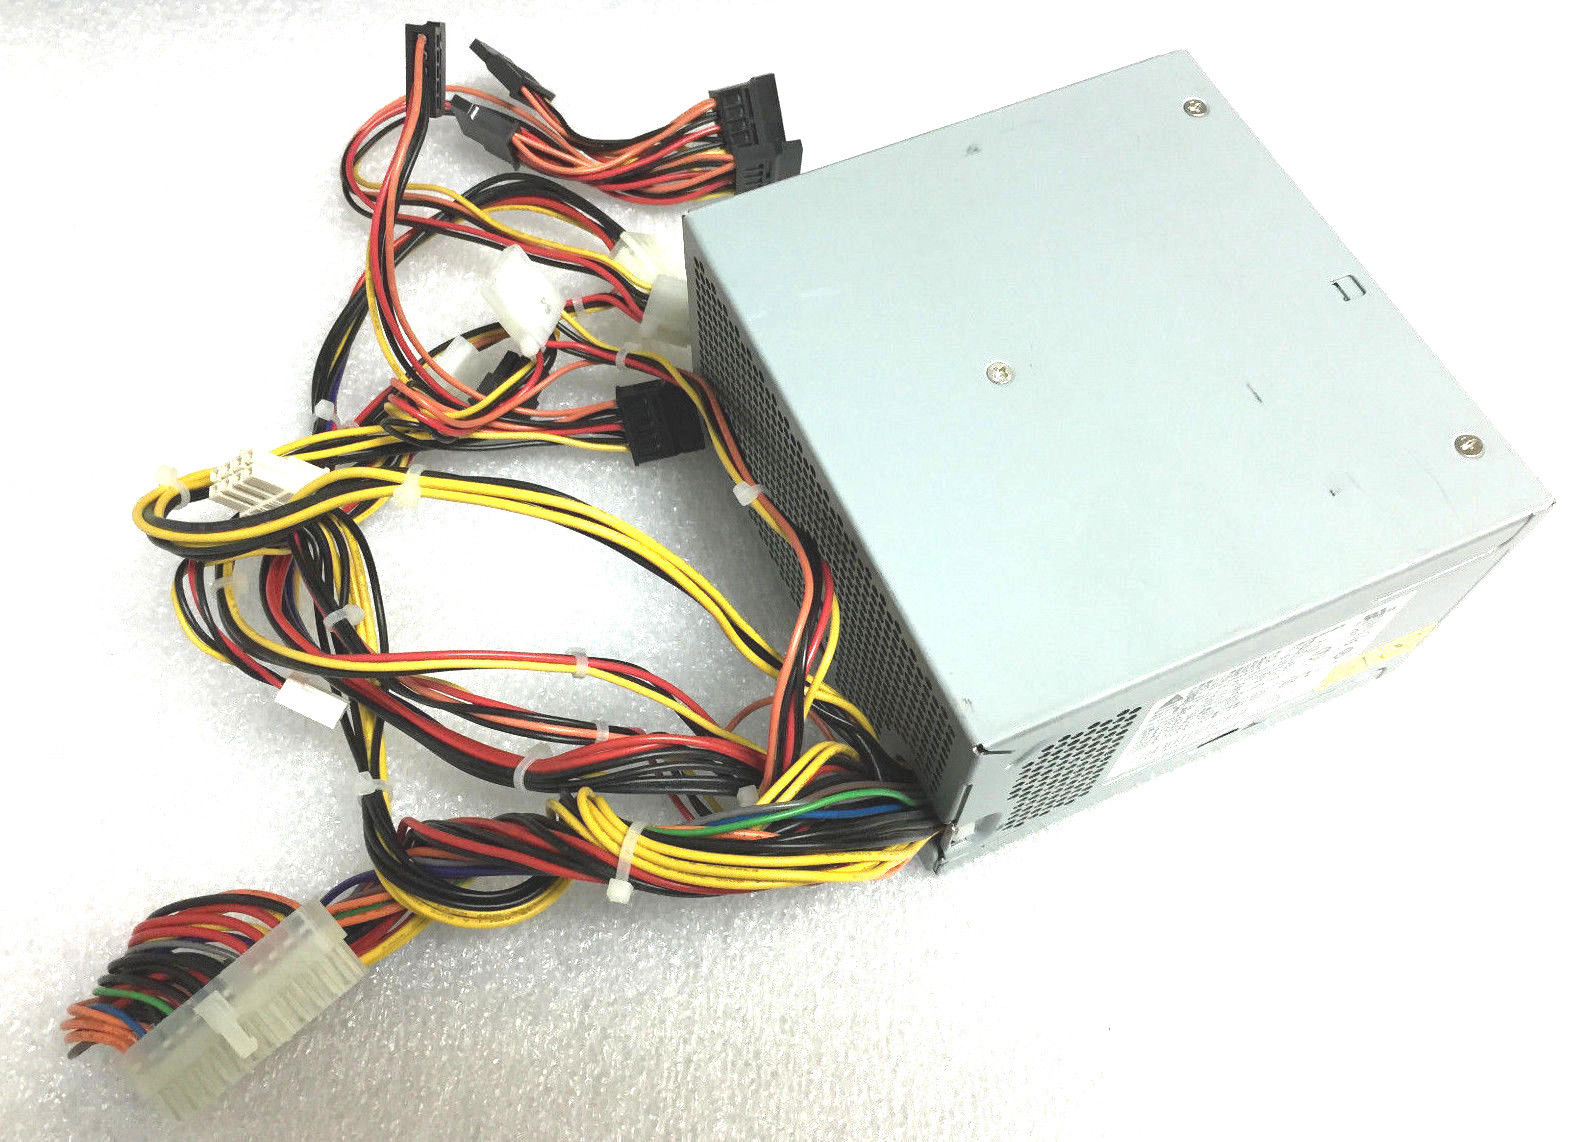 IBM X3200 M3 400W Power Supply (46M6678)